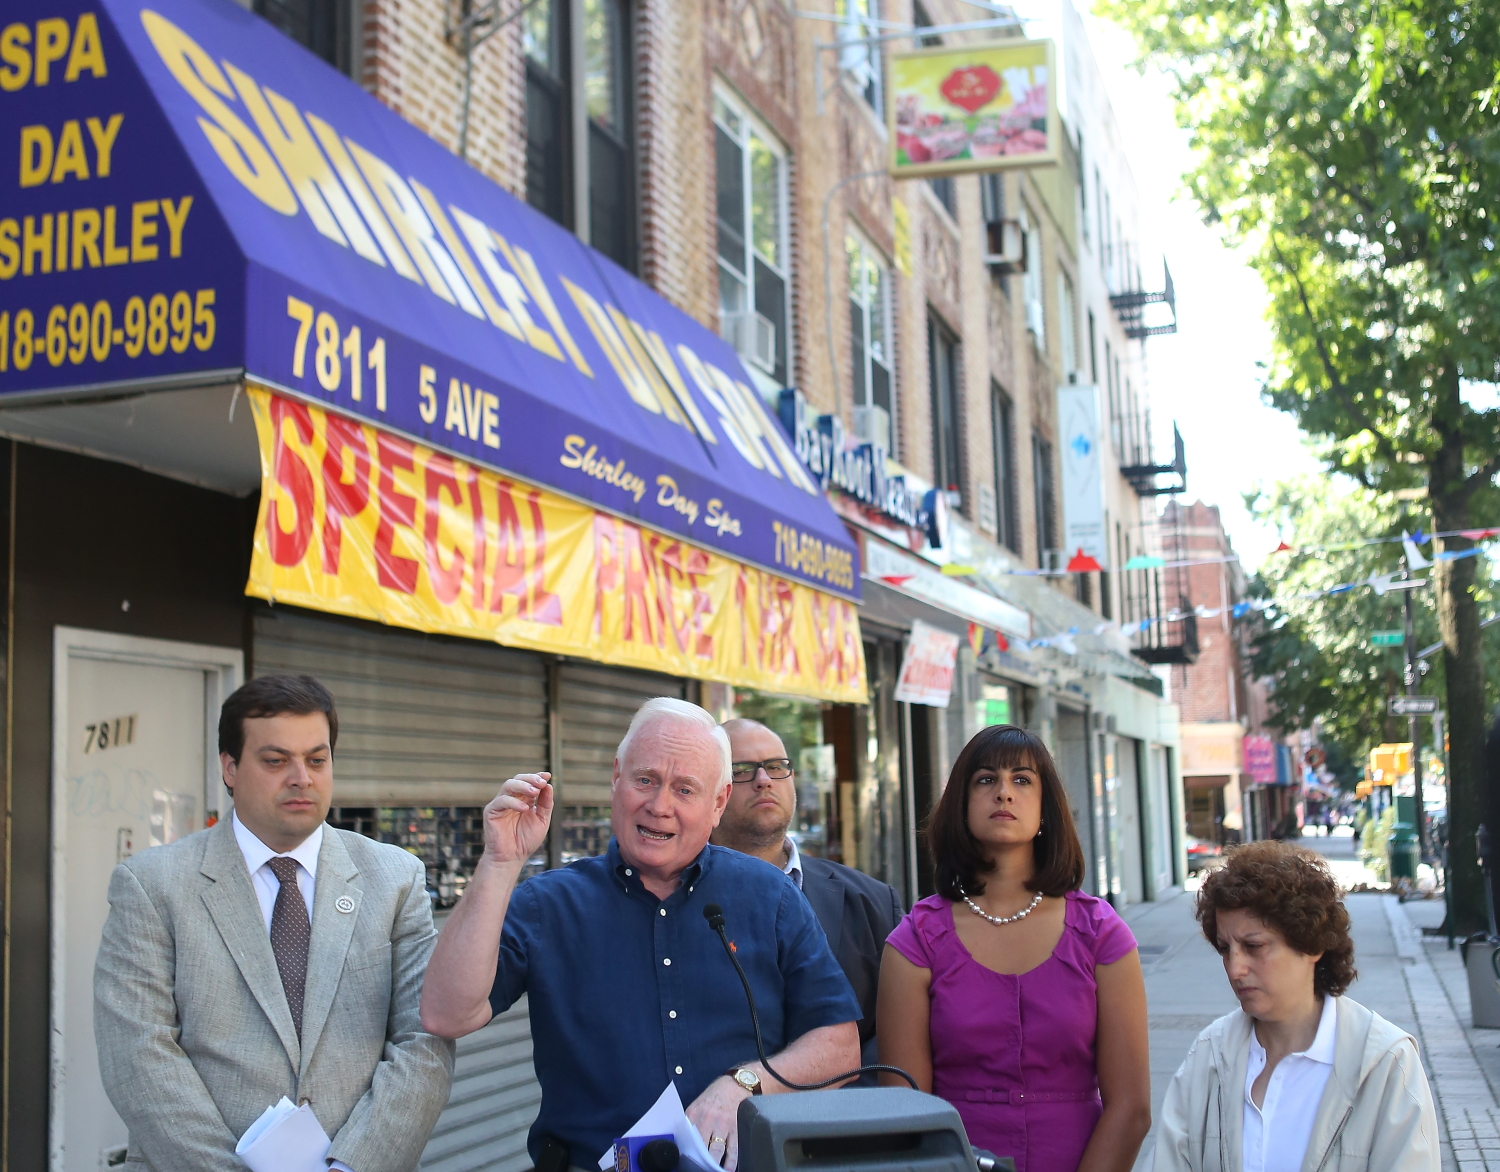 More Day Spas Suspected for Prostitution in Bay Ridge